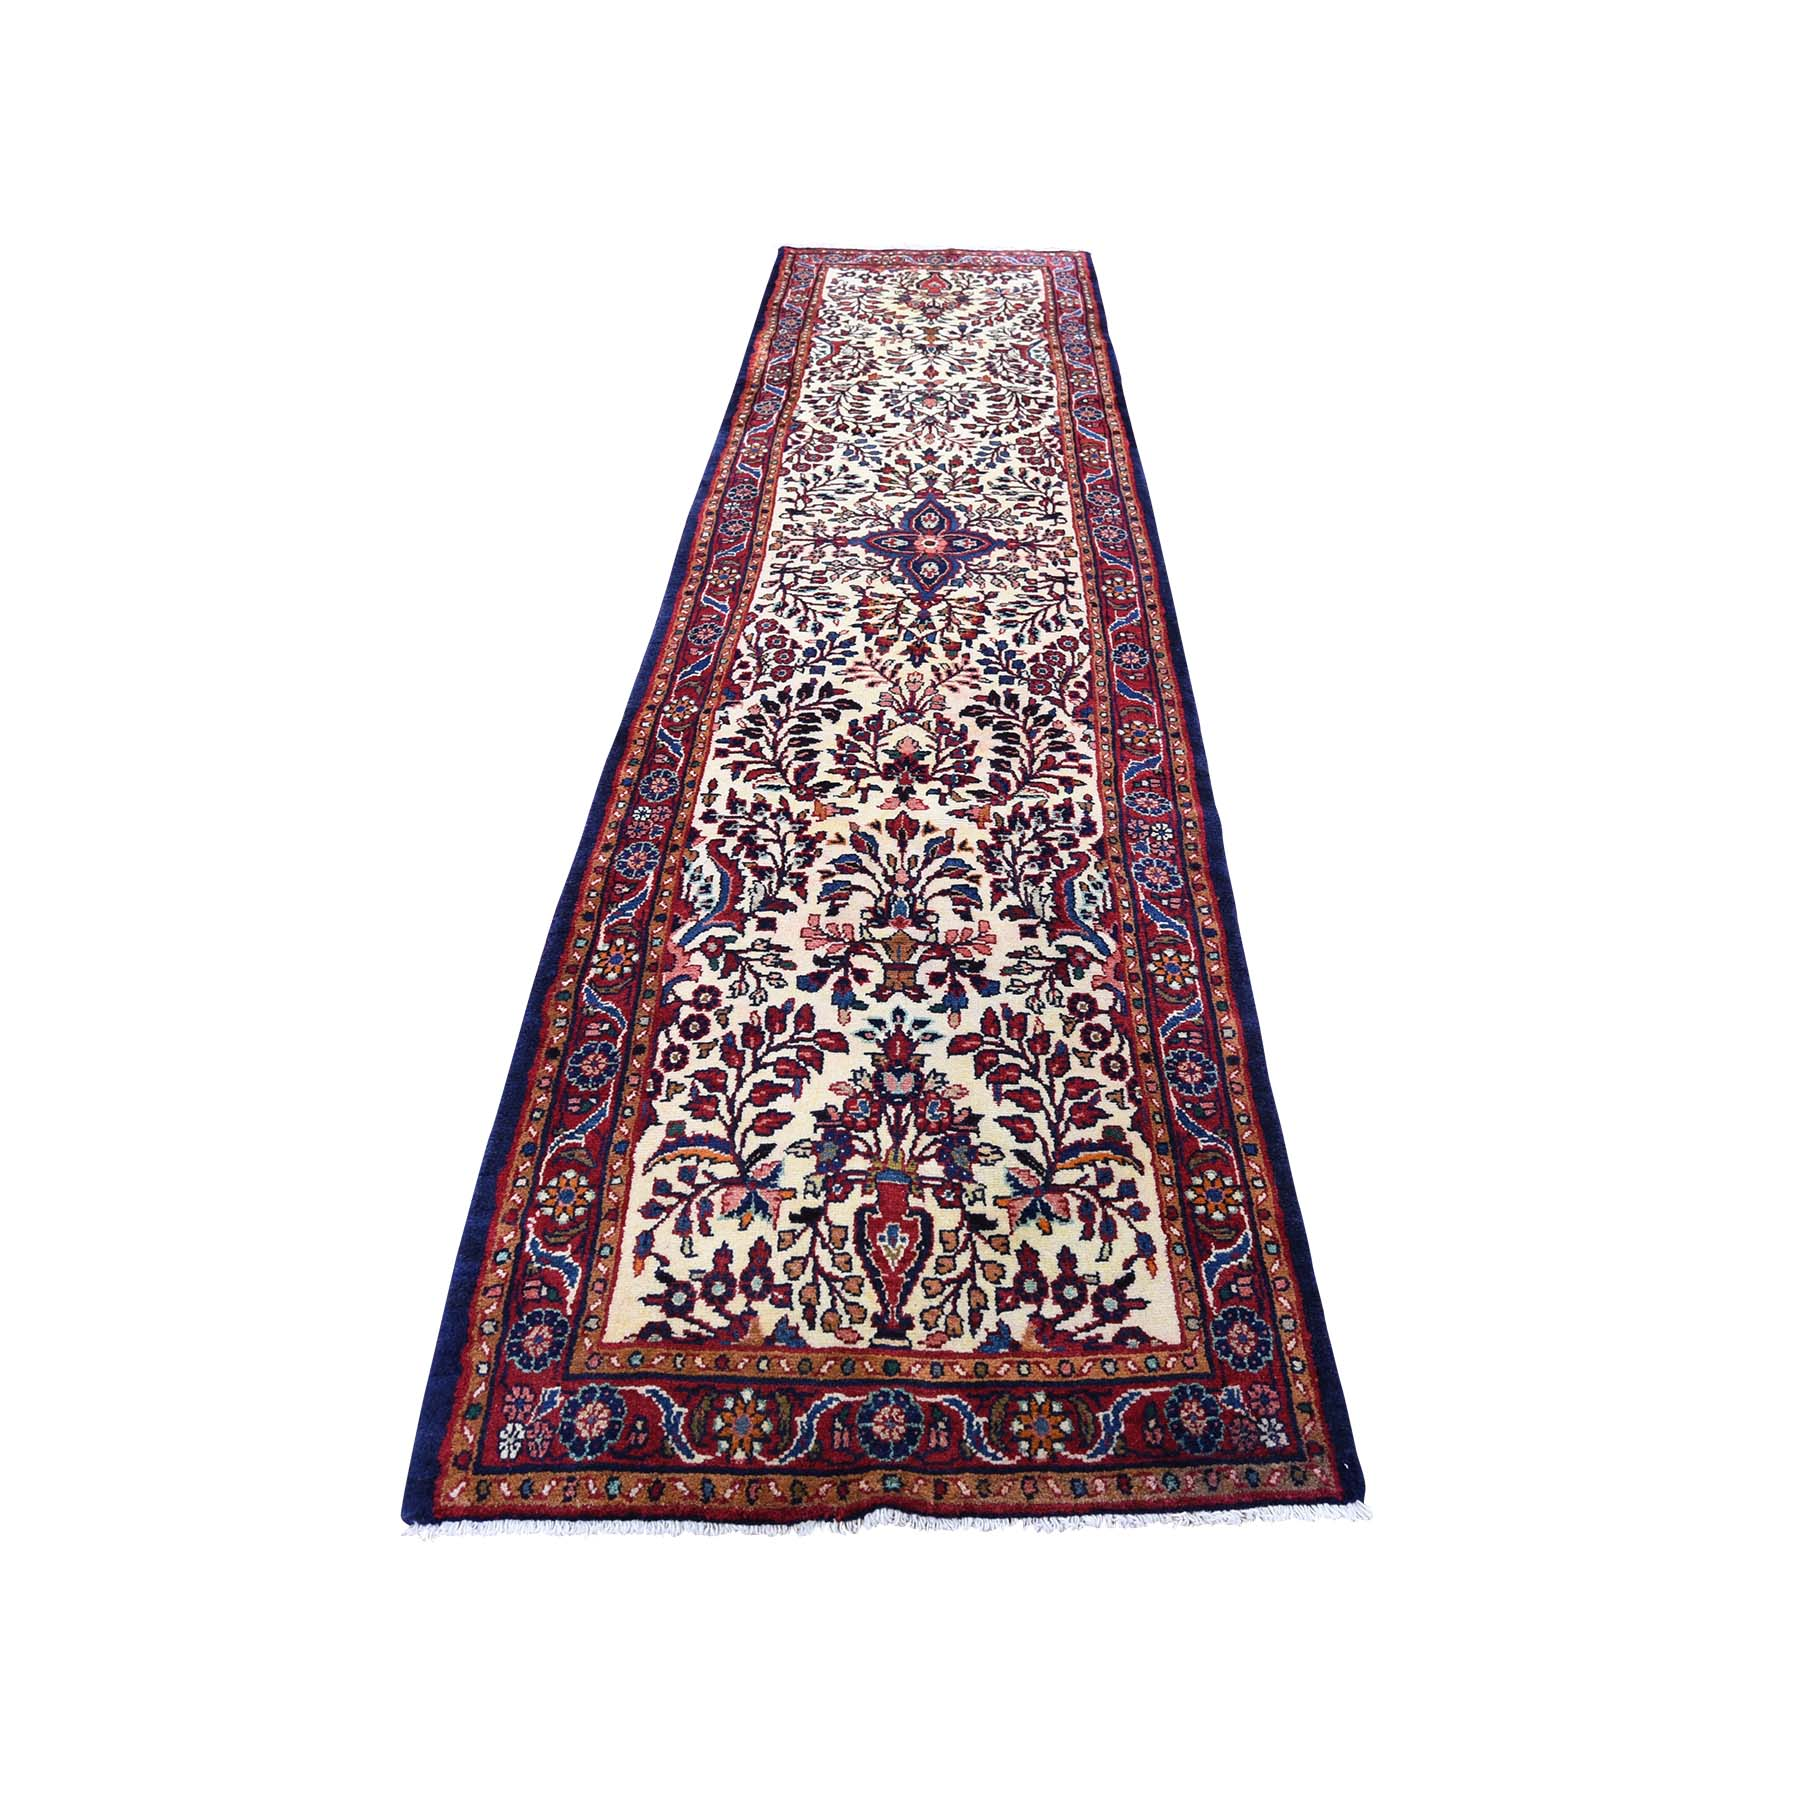 "2'8""X11' New Persian Lilahan Runner Hand-Knotted Oriental Oriental Rug moadbe80"